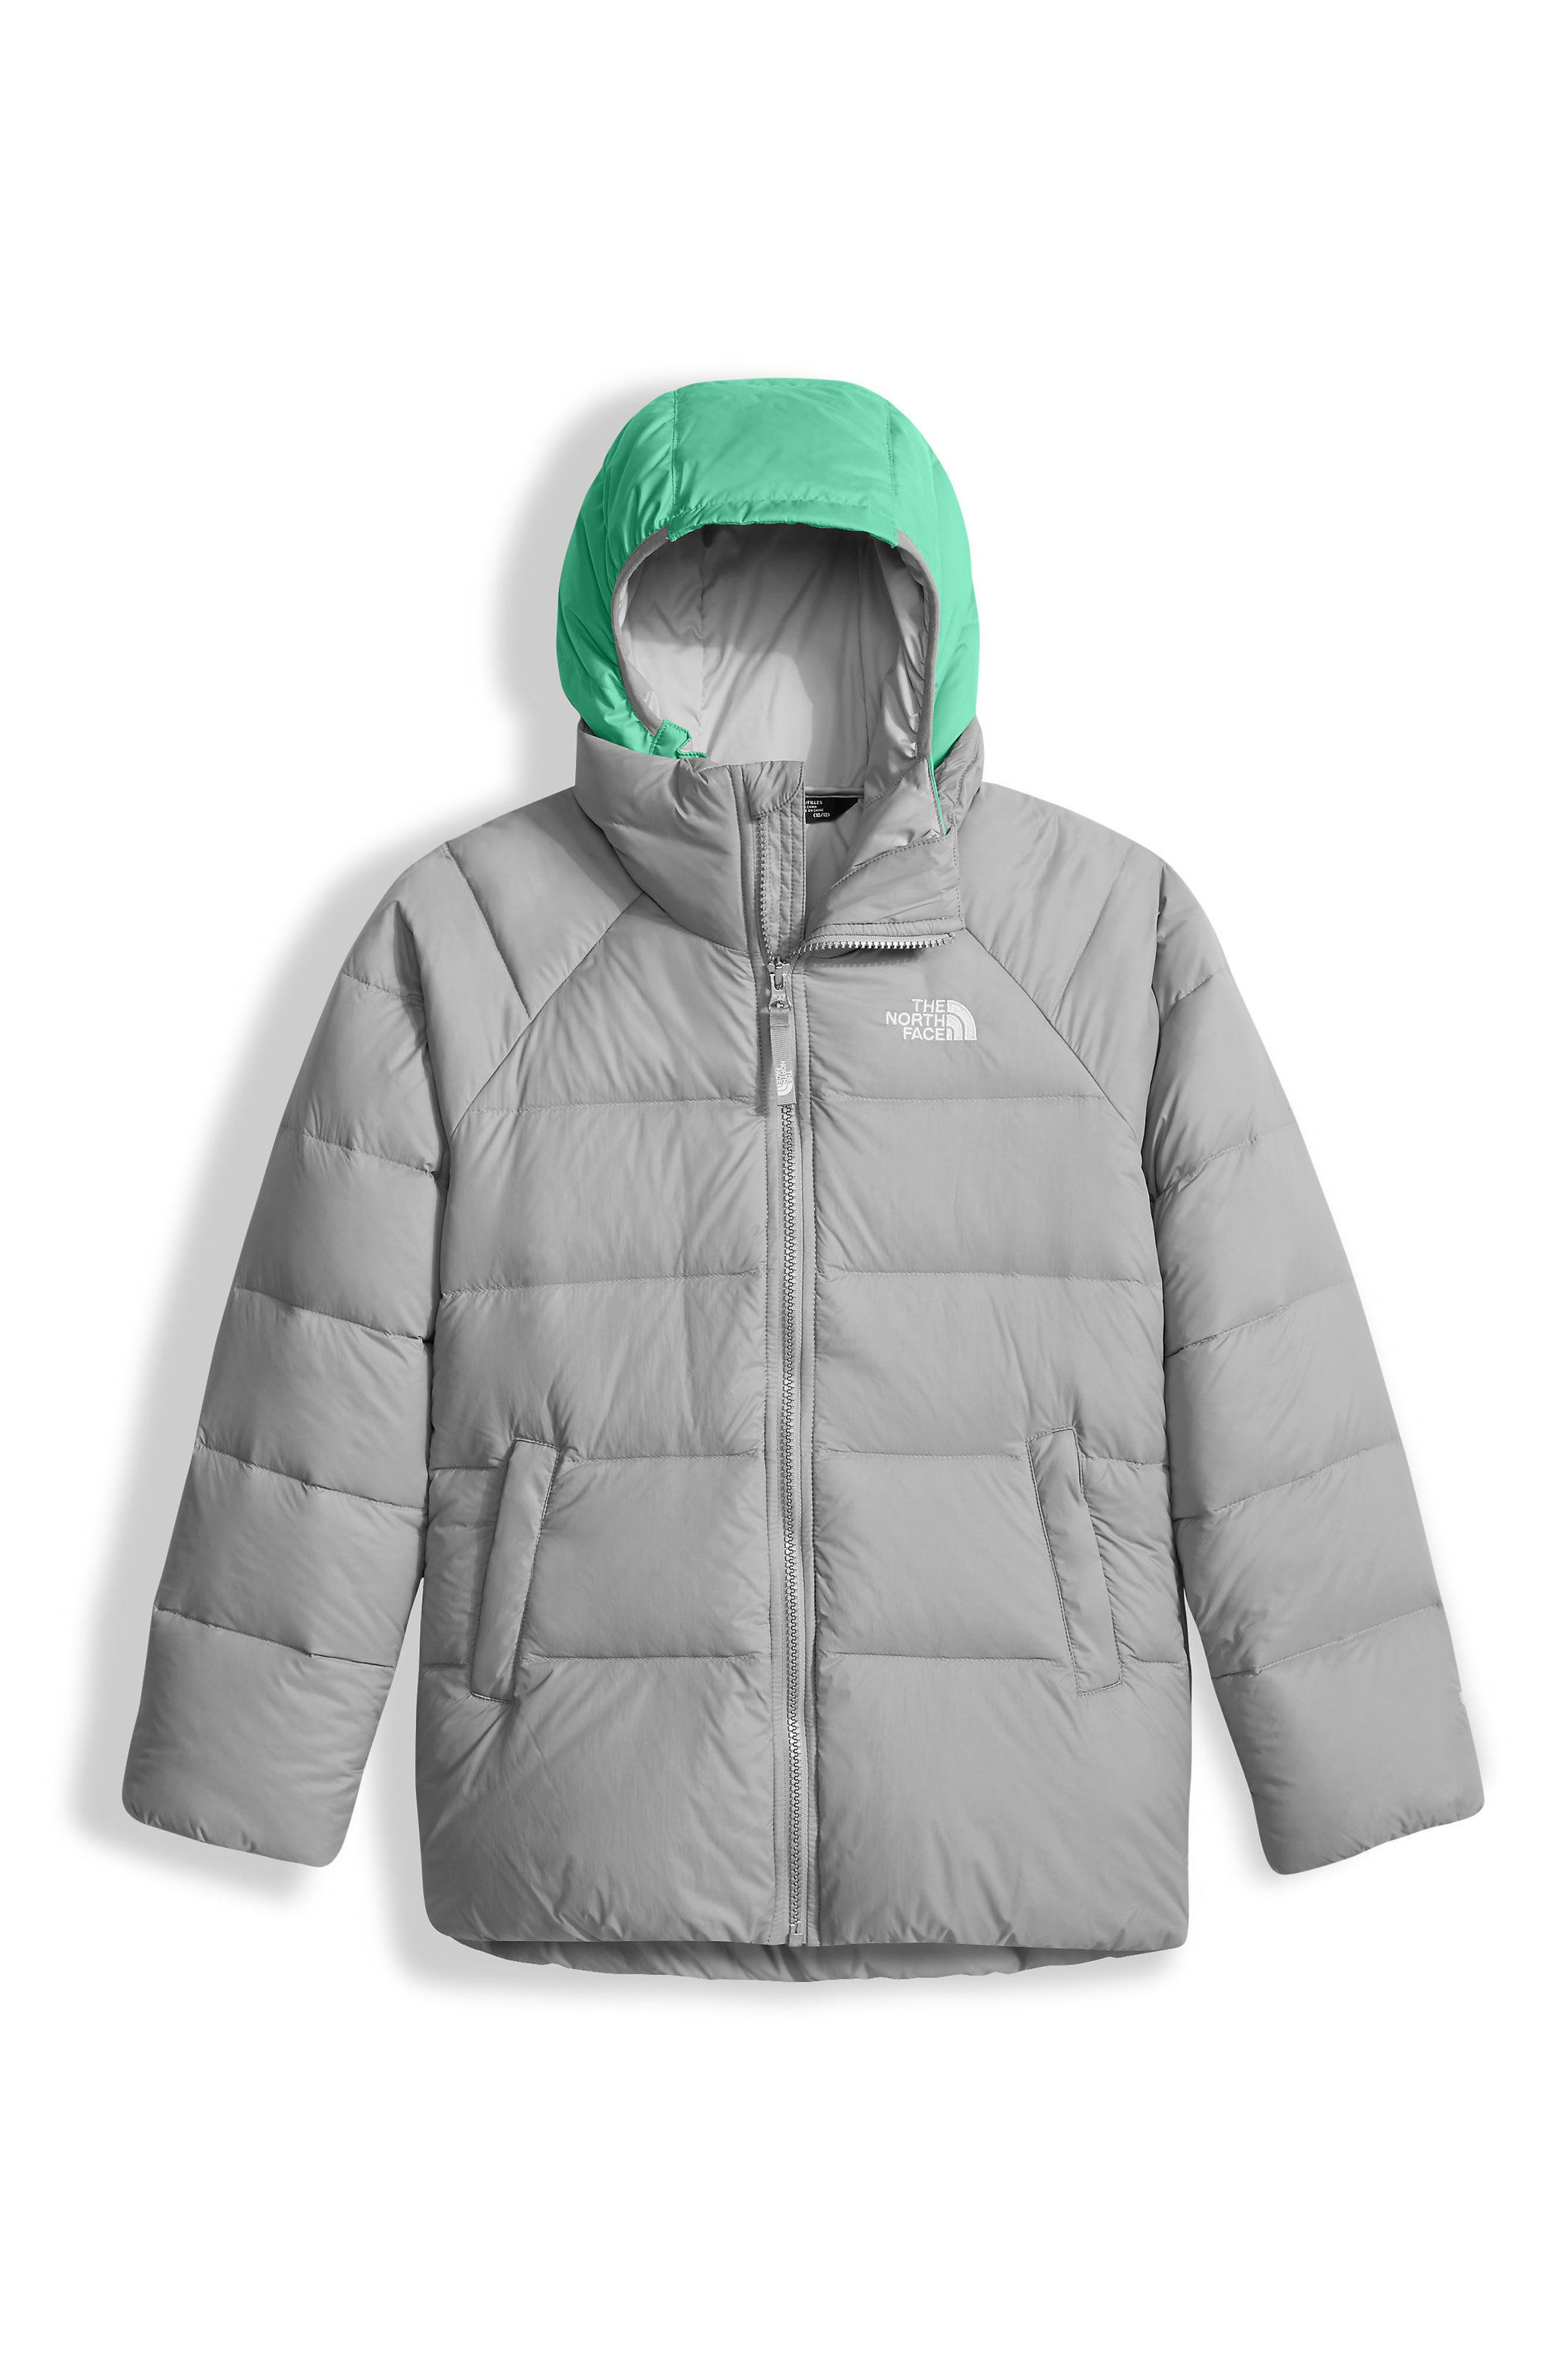 Alternate Image 1 Selected - The North Face Double Down TriClimate® 3-in-1 Jacket (Little Girls & Big Girls)